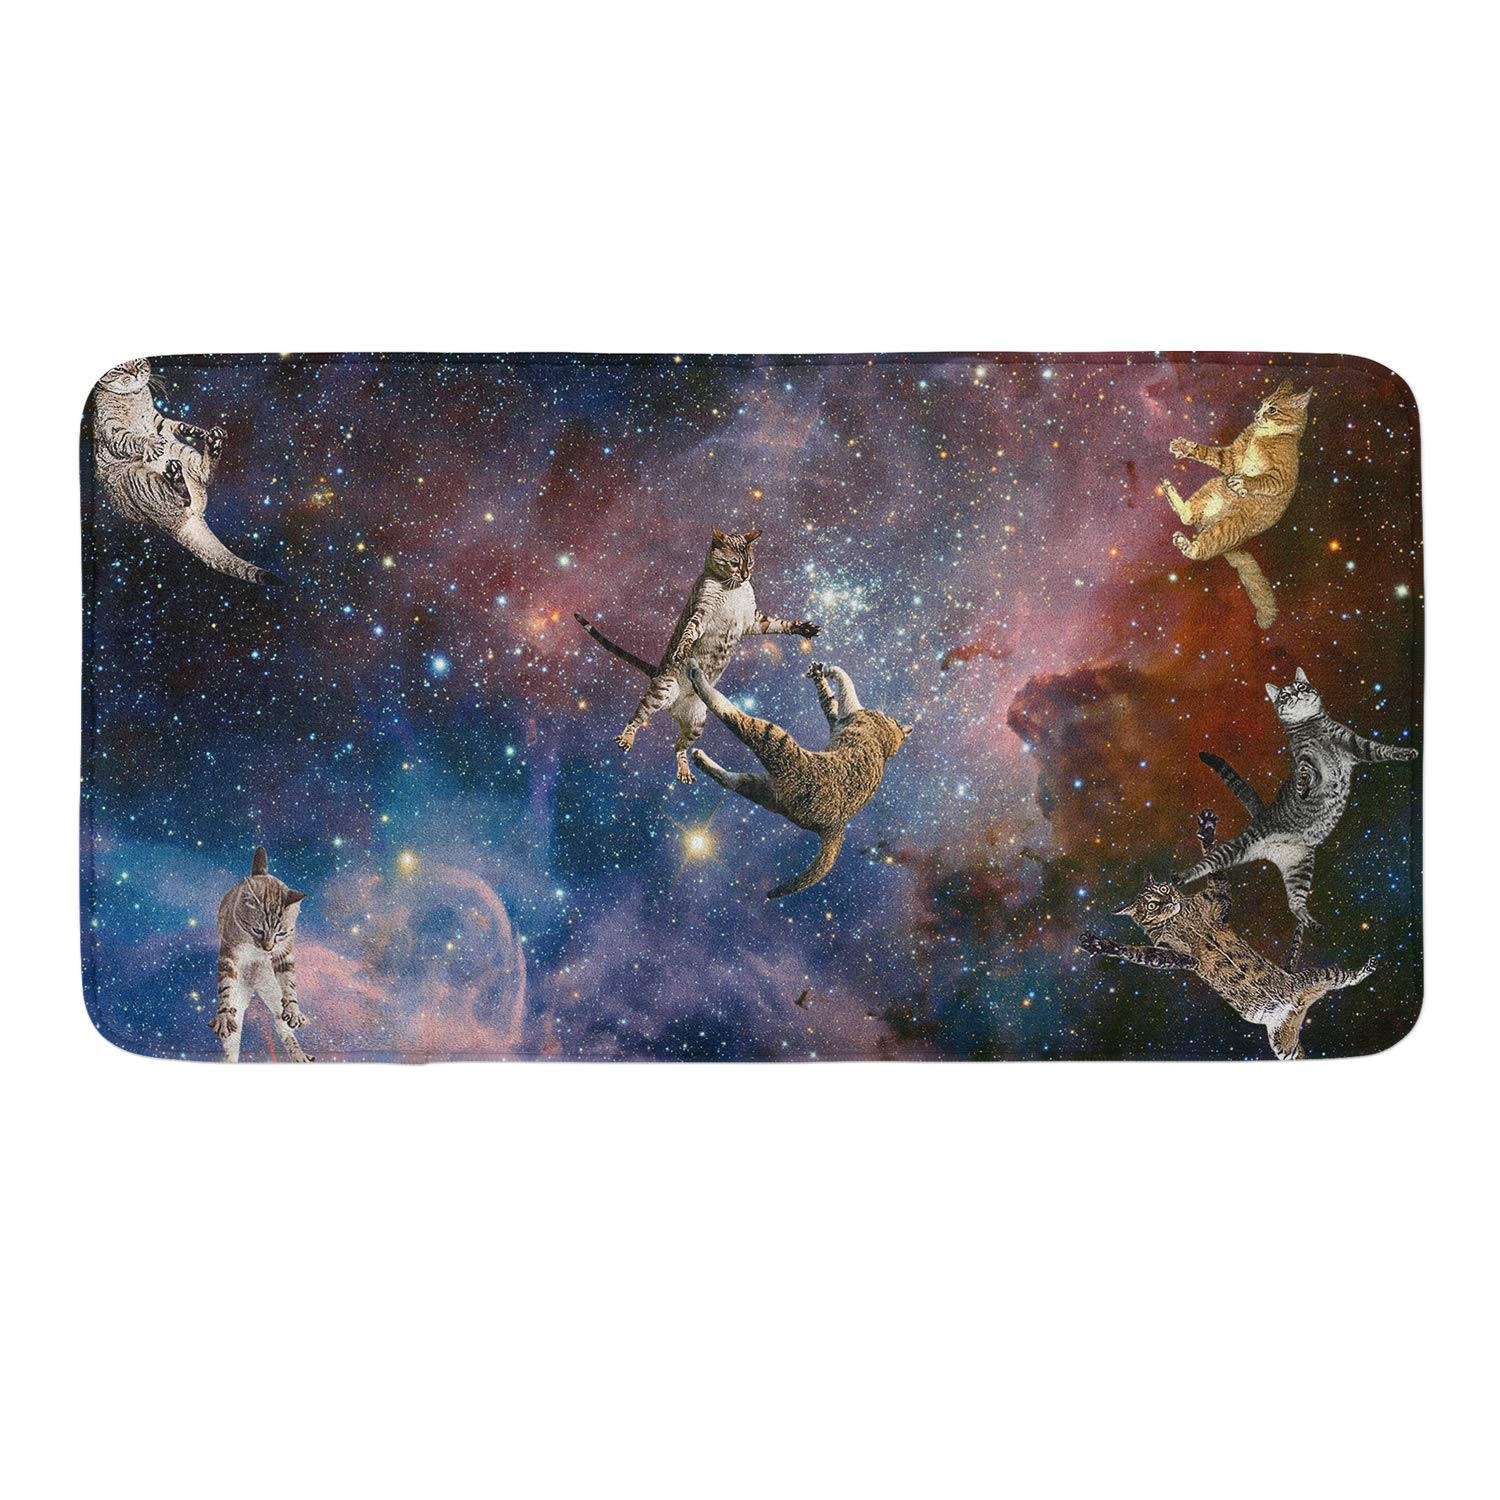 Anti-Slip Memory Foam Bath Mat Shower Rugs - Star Wars Cats - 18 x 36 Inch Absorbent Quick-Dry Floor Mat Carpets Home Decor Bathroom Tub Kichen Rugs